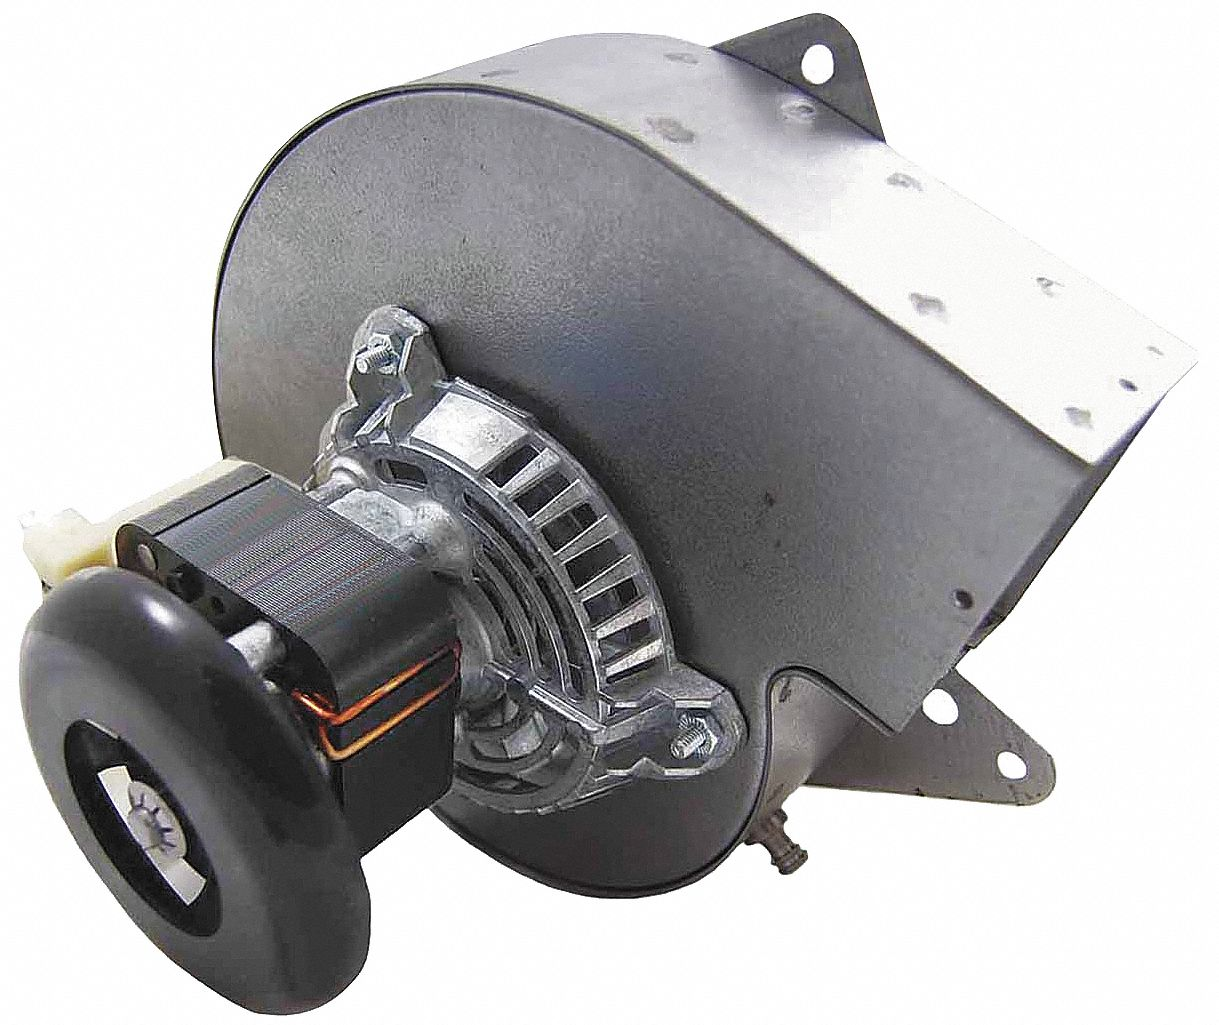 Amana Furnace Blower Motor Replacement